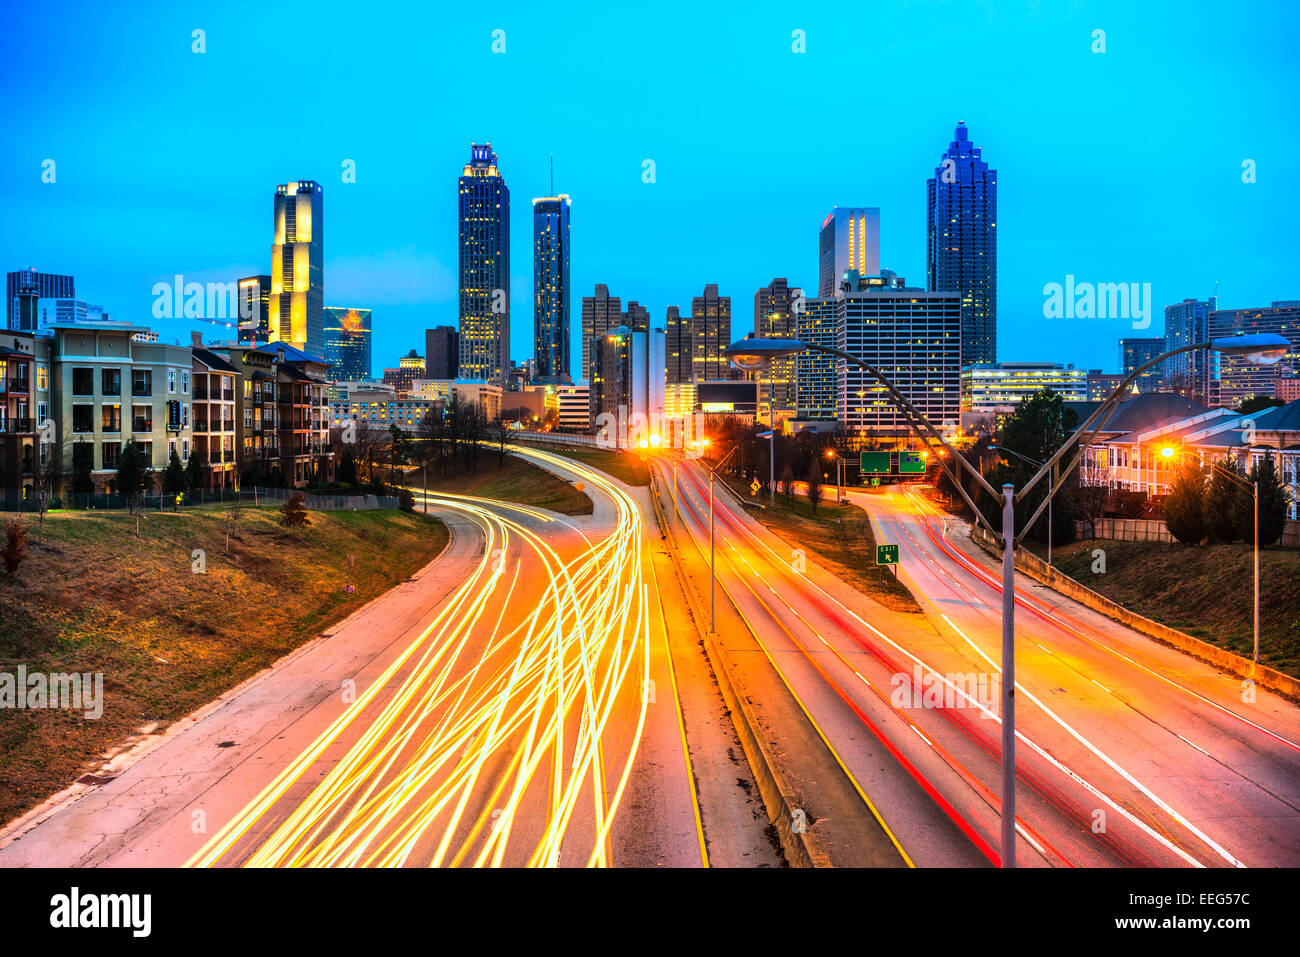 Skyline of downtown Atlanta, Georgia, USA - Stock Image